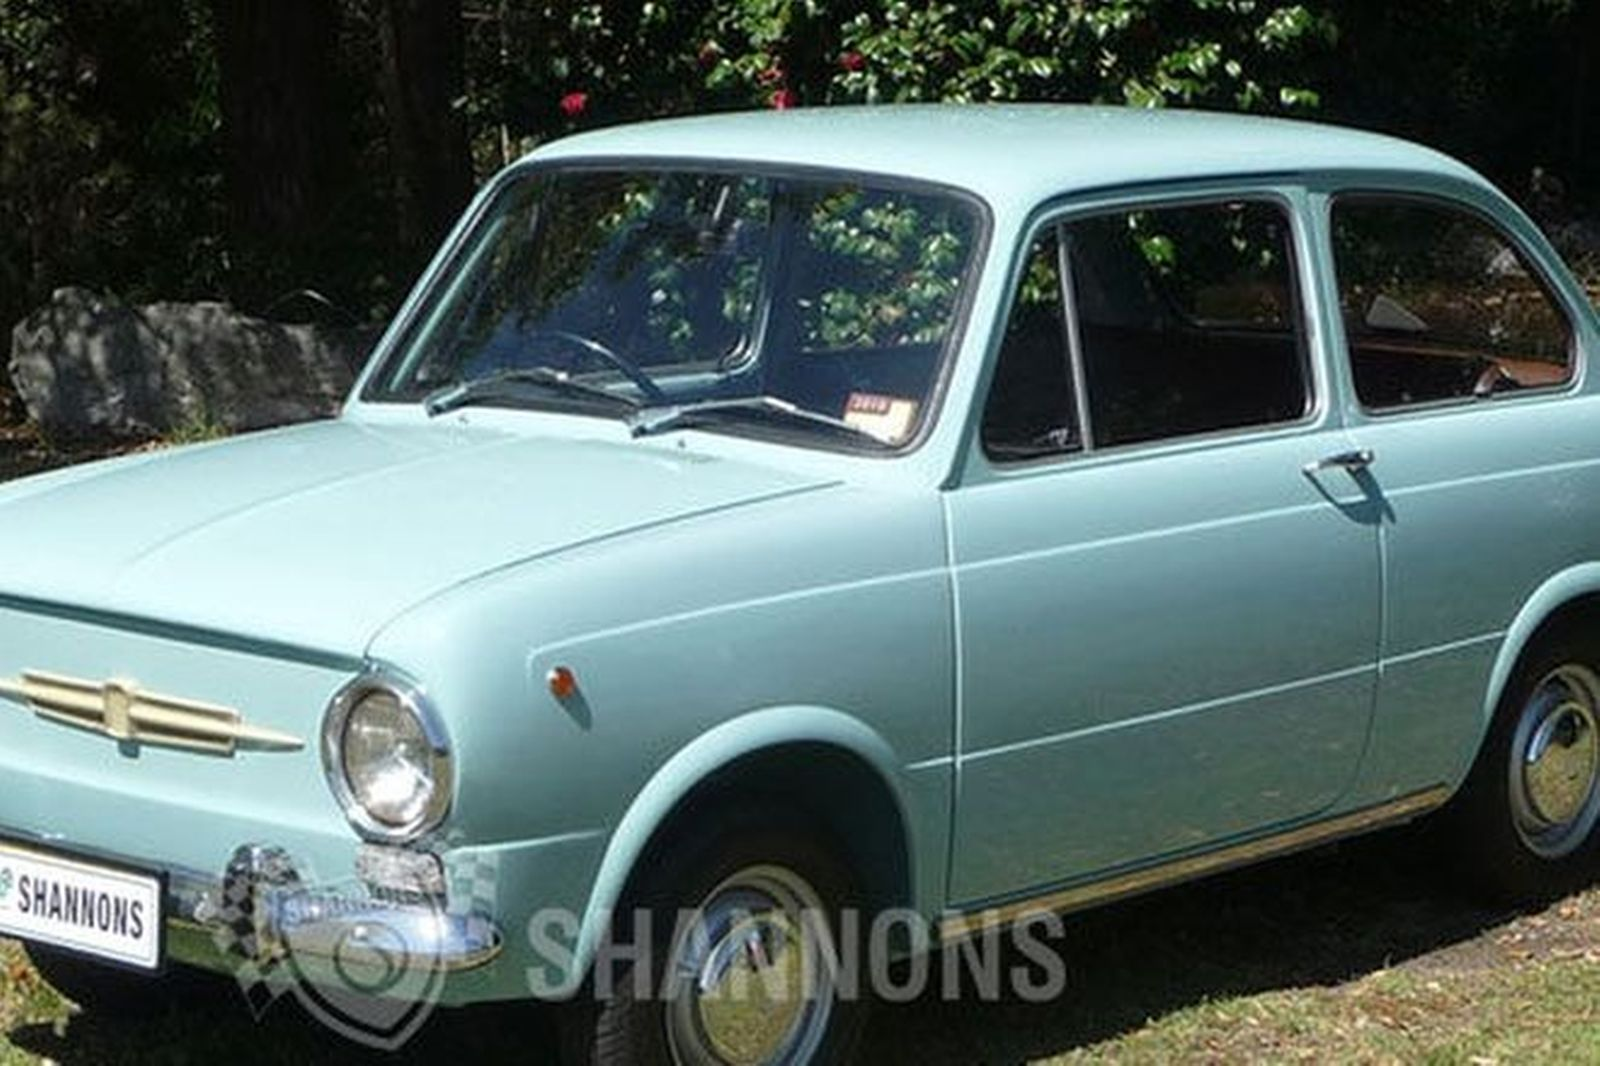 sold fiat 850 2 door sedan auctions lot 2 shannons. Black Bedroom Furniture Sets. Home Design Ideas